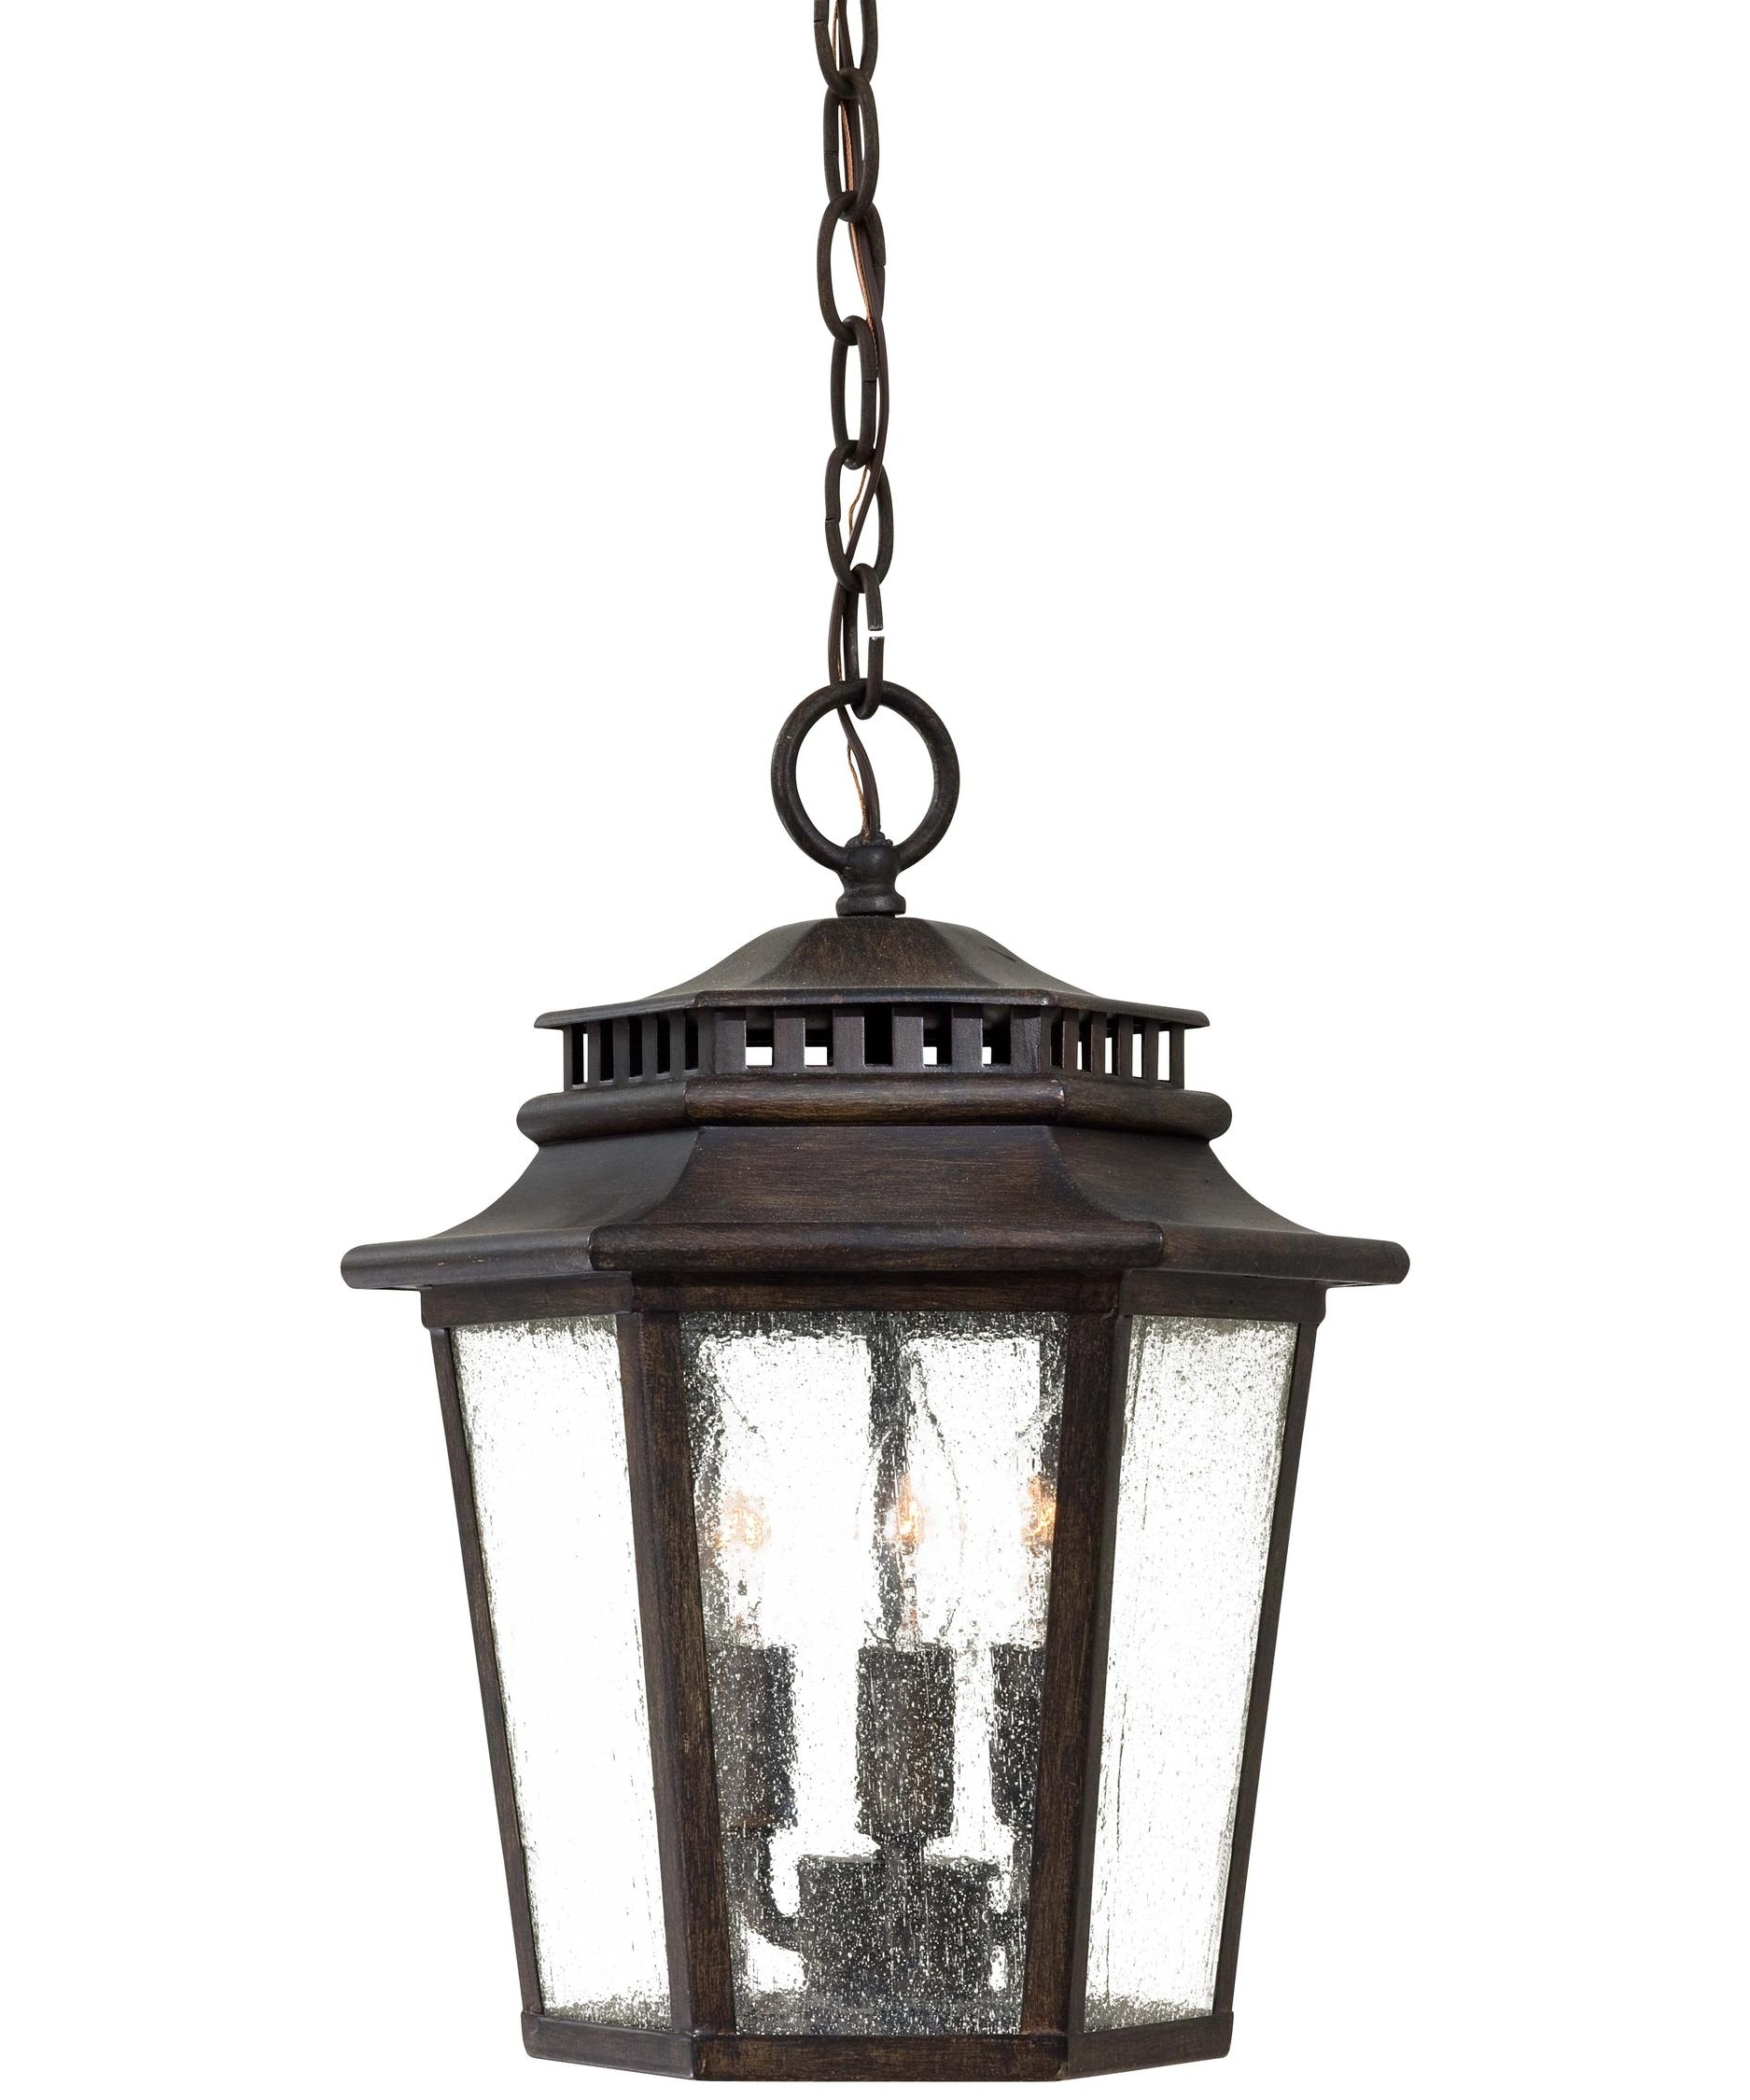 Large Hanging Outdoor Lights – Outdoor Designs Regarding Most Up To Date Outdoor Hanging Porch Lights (View 8 of 20)